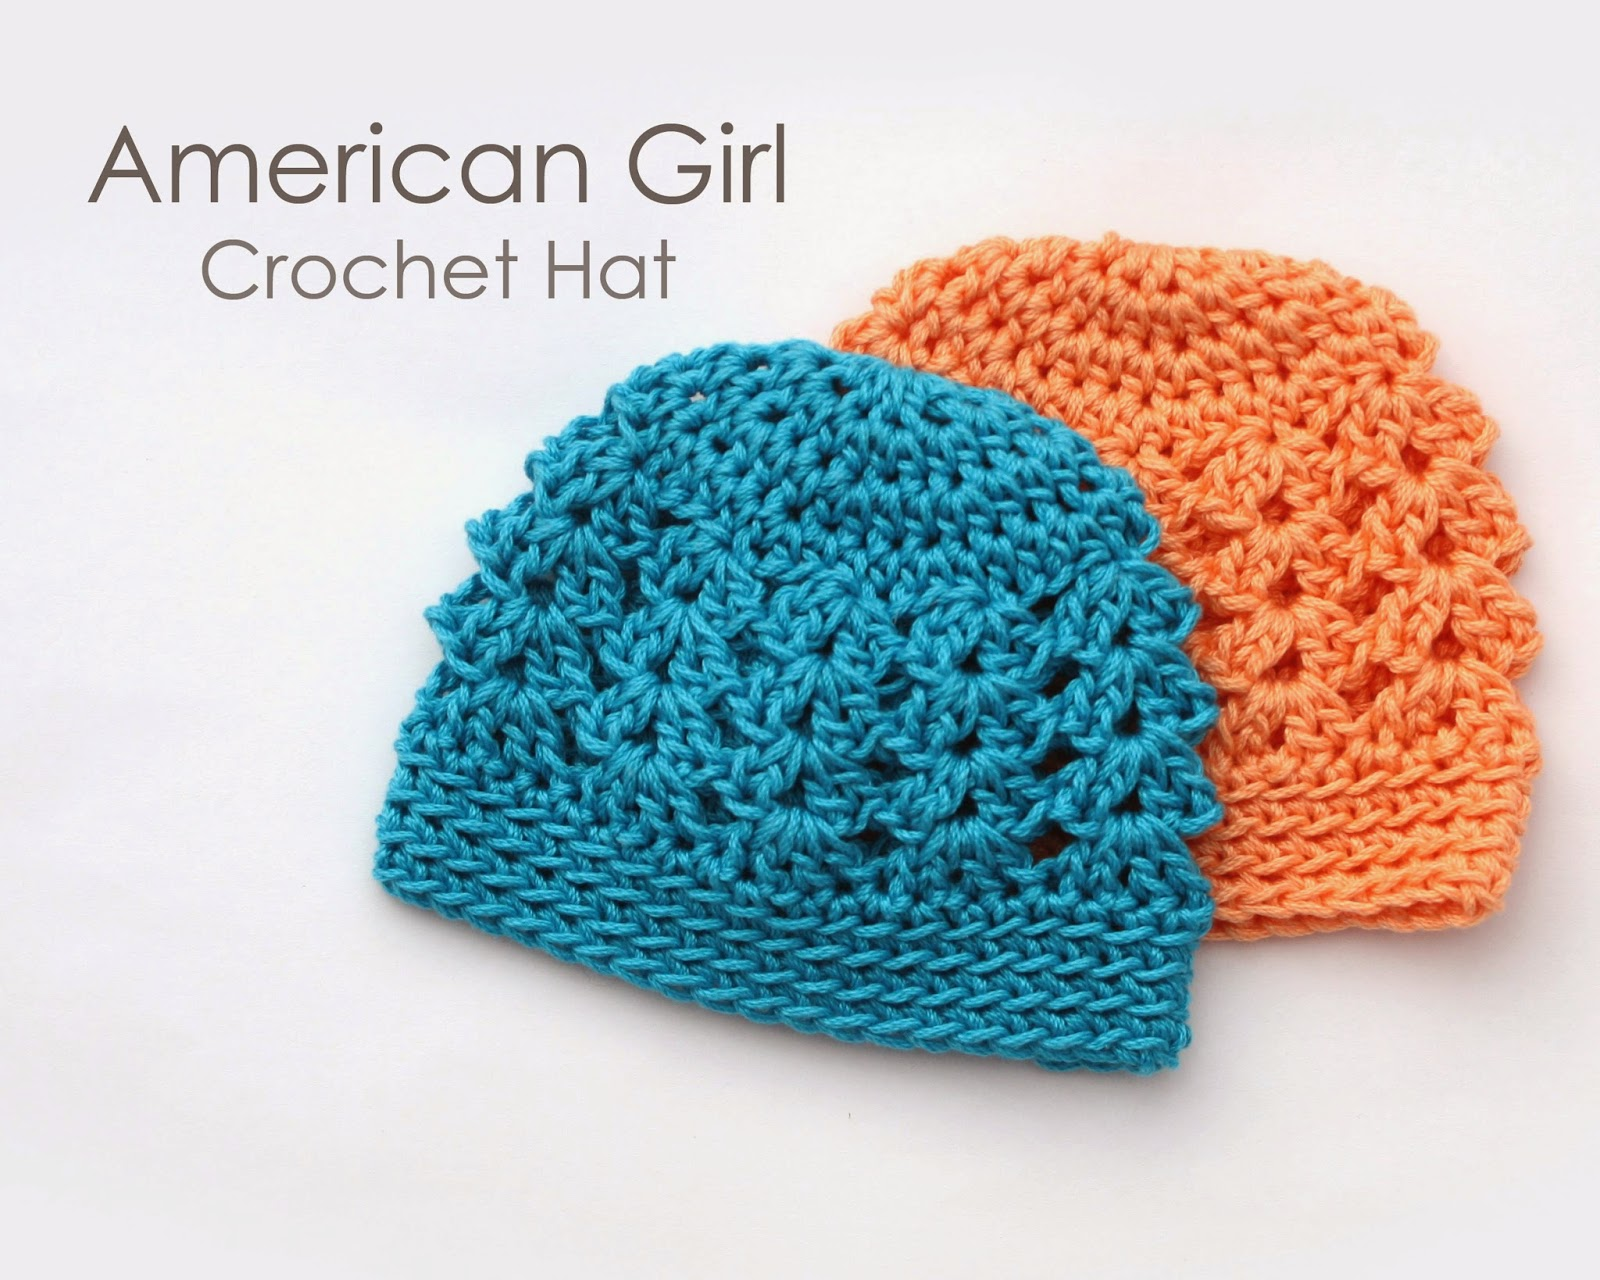 Crochet Patterns I Can Make And Sell : Little Abbee: TUTORIAL: American Girl Crochet Hat